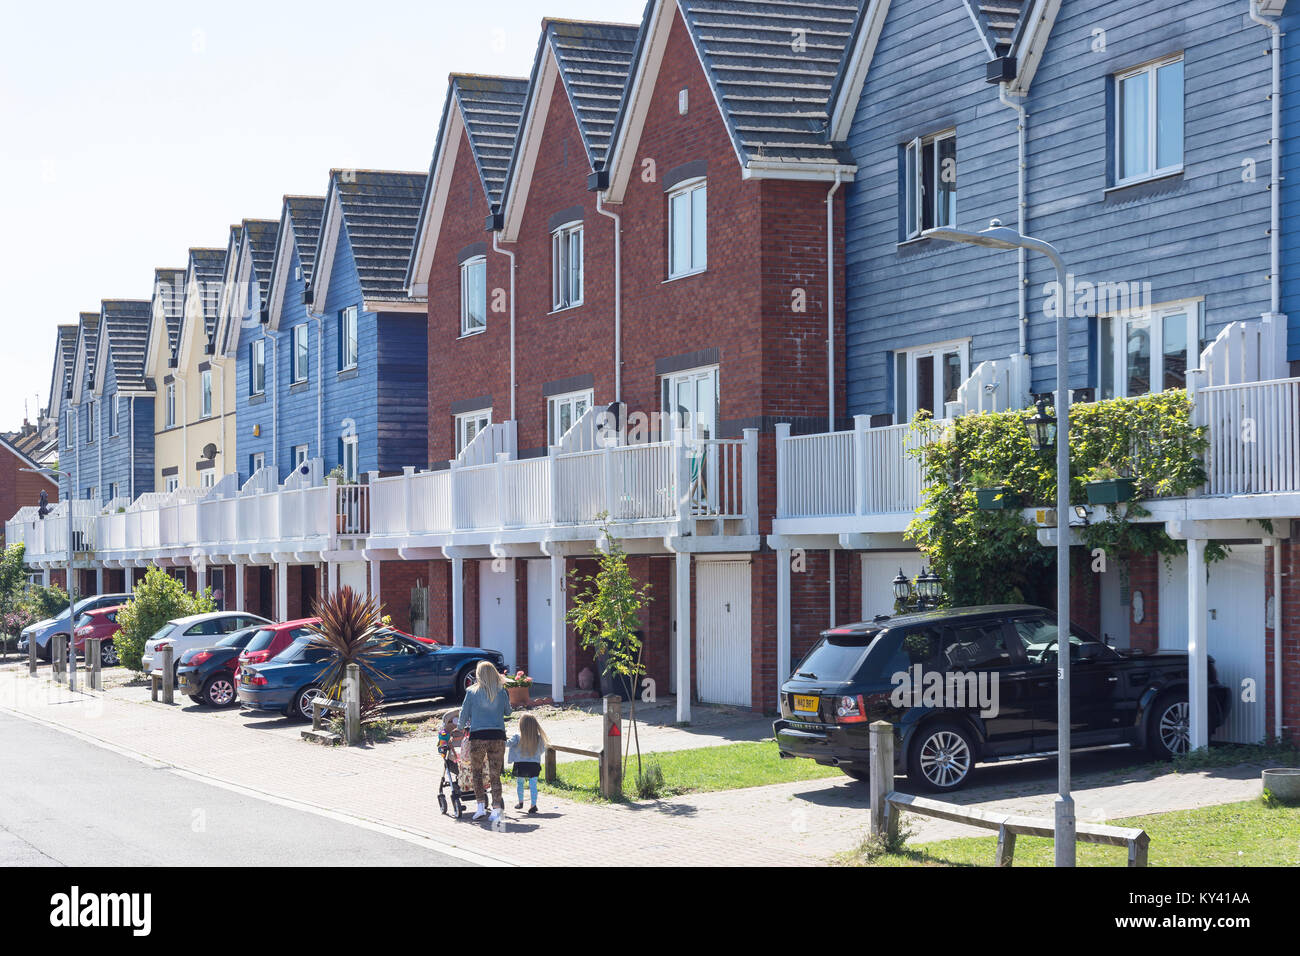 Modern terraced houses, West Quay, Newhaven, East Sussex, England, United Kingdom - Stock Image